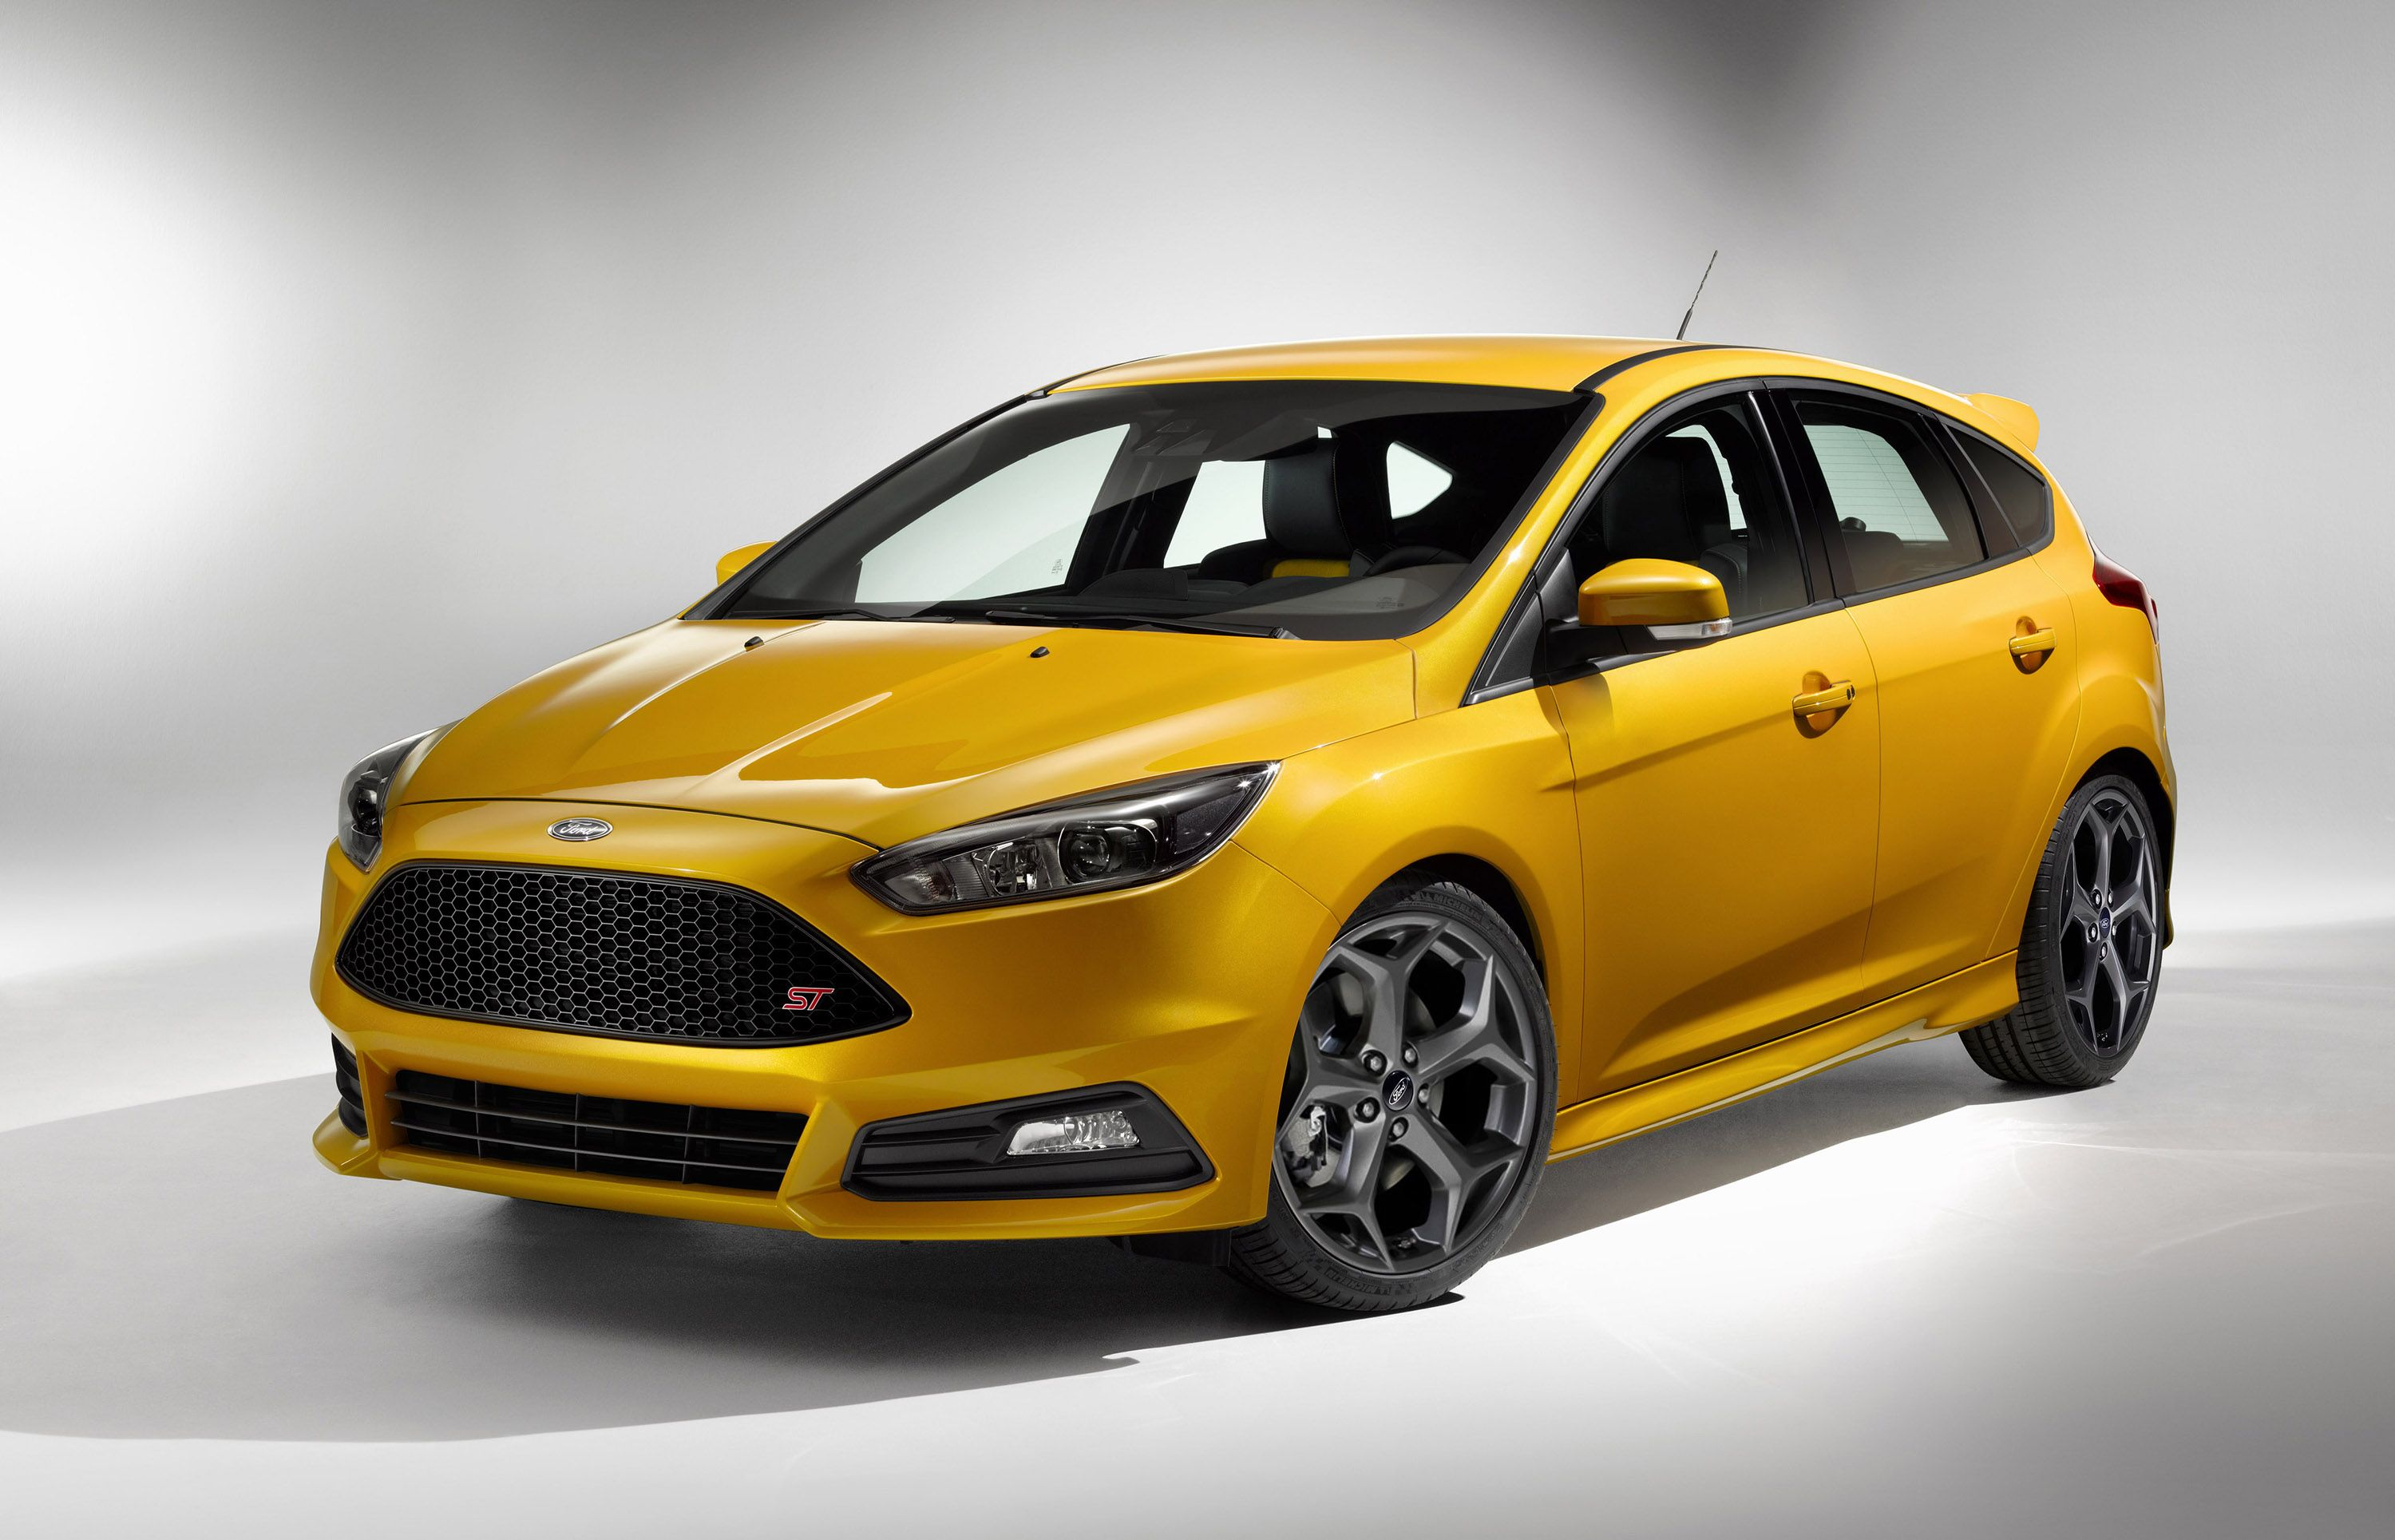 Ford unveiled the 2015 ford focus st at the goodwood festival of speed in the united kingdom the focus st has been redesigned to look more sportier and